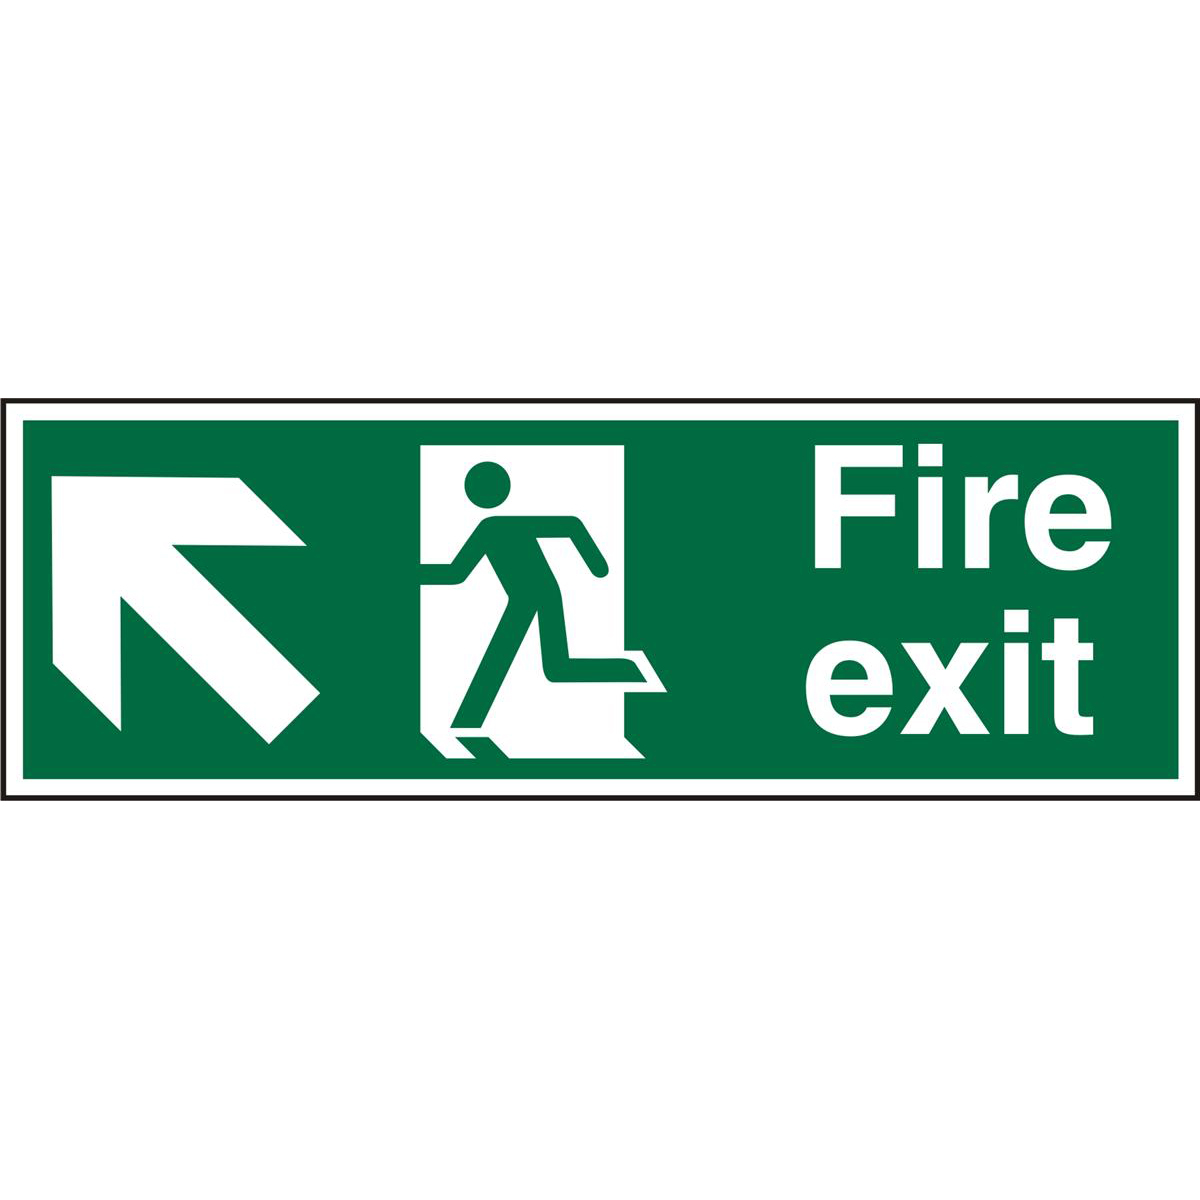 Safe Sign 600x200 1mm FireExit Man Running Left&Arrow tlhc Ref SP317SRP600x200 *Up to 10 Day Leadtime*